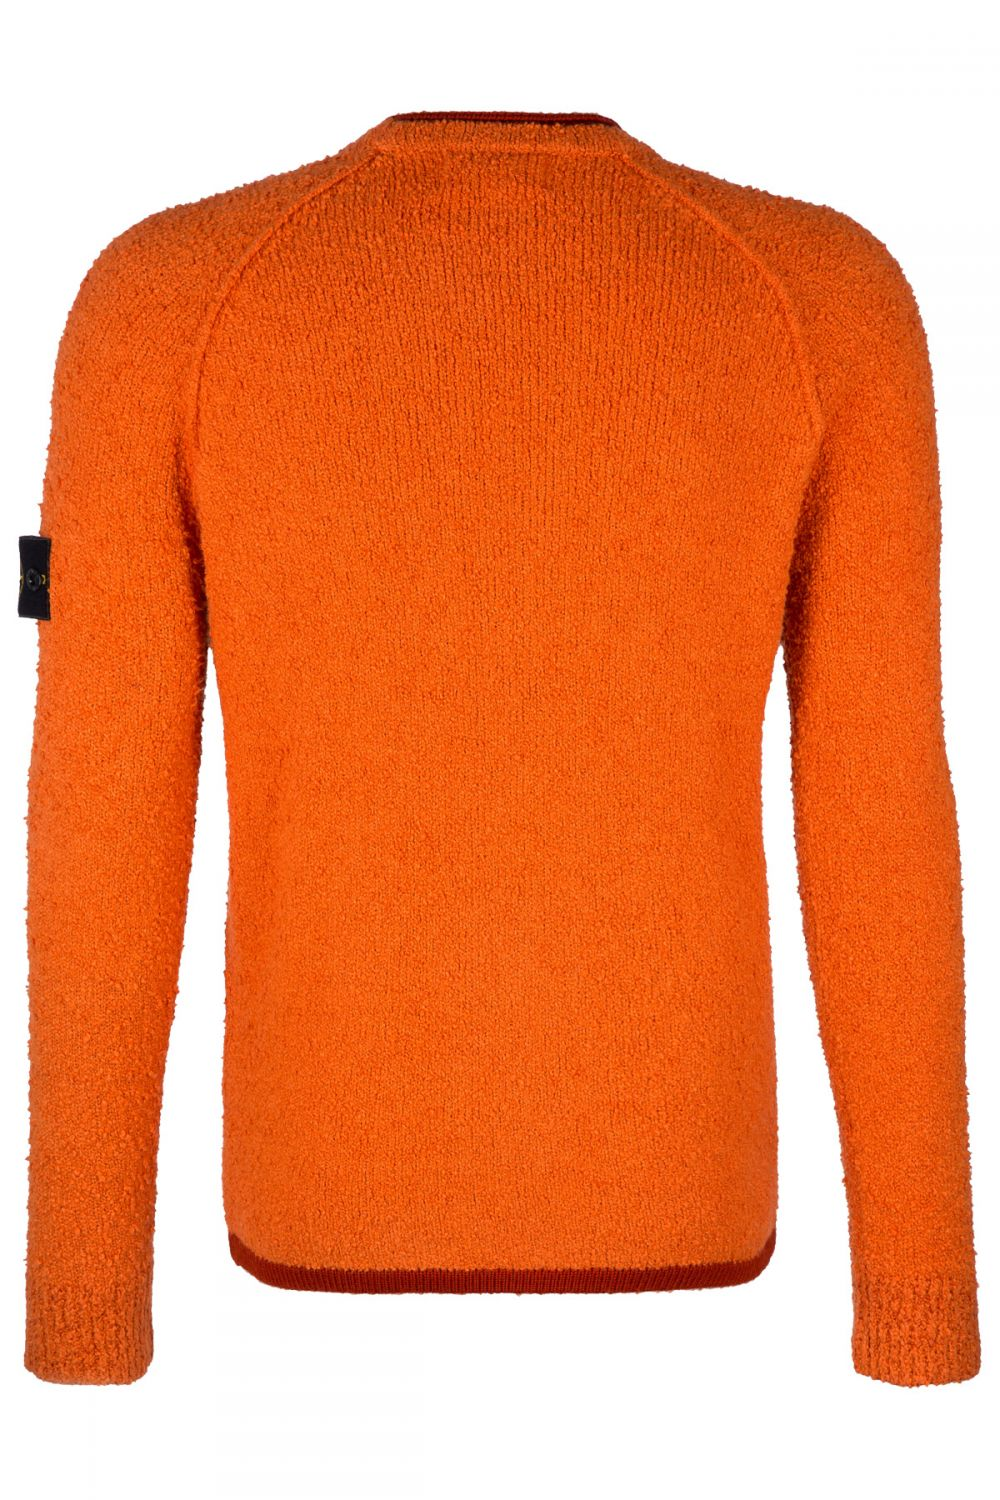 Stone Island Herren Strickpullover Orange 2